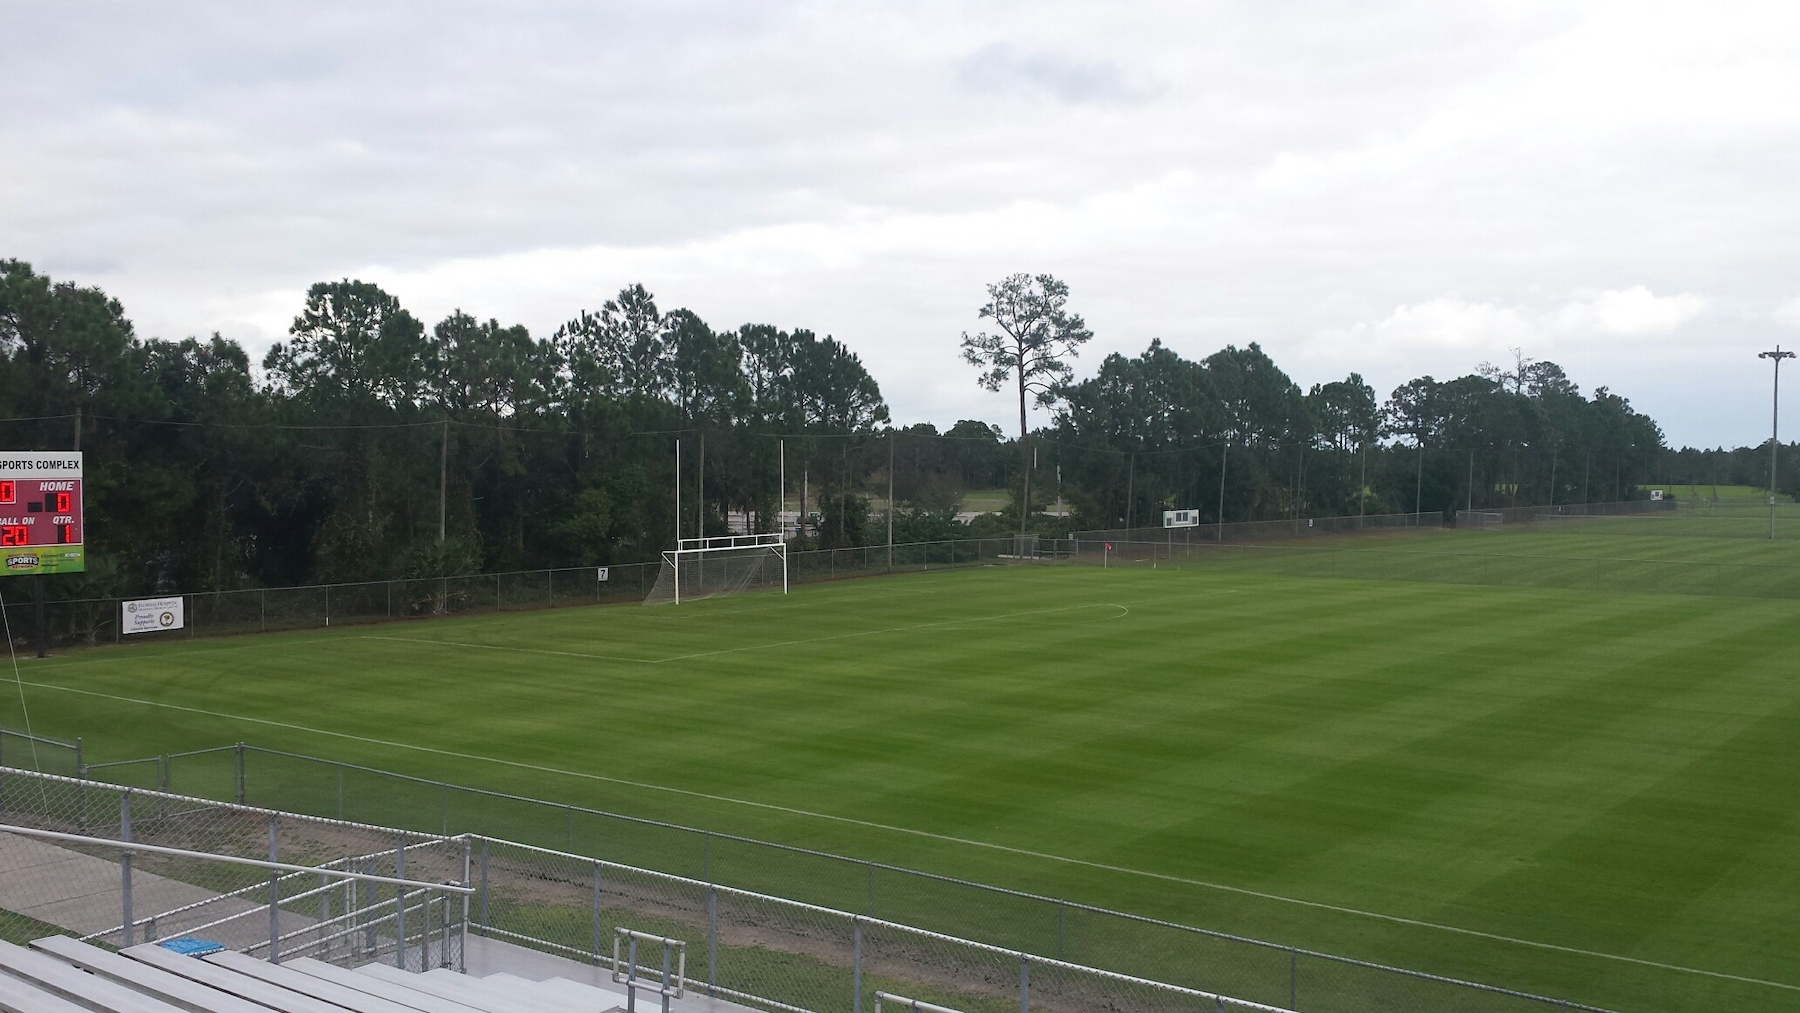 Natural grass athletic field